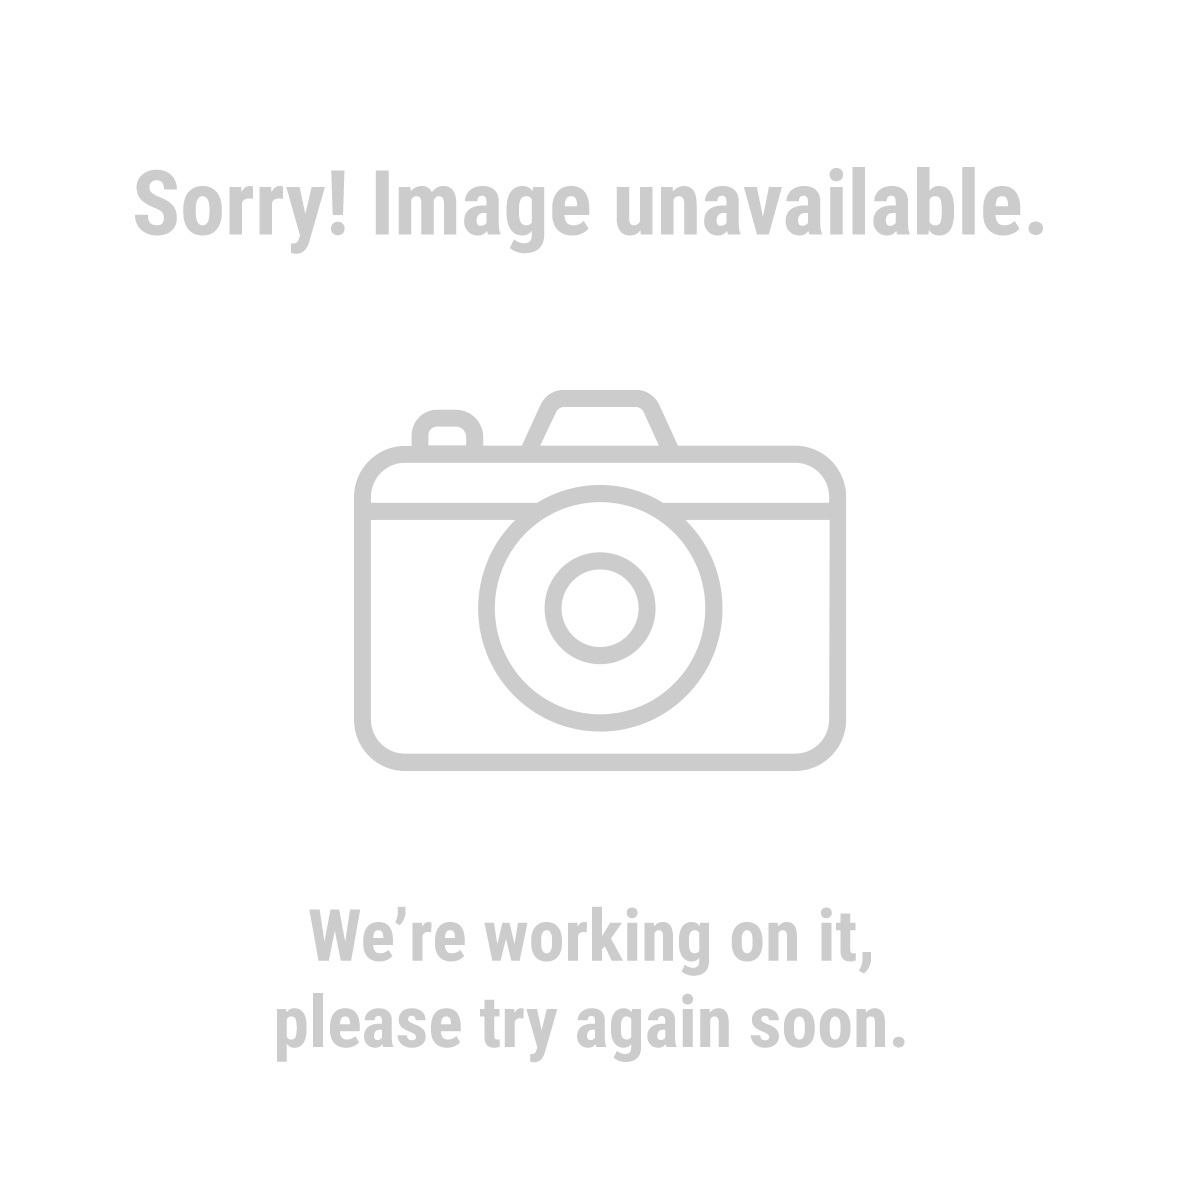 Warrior® 60617 5 Piece 6 in. 80 Grit PSA Sanding Discs